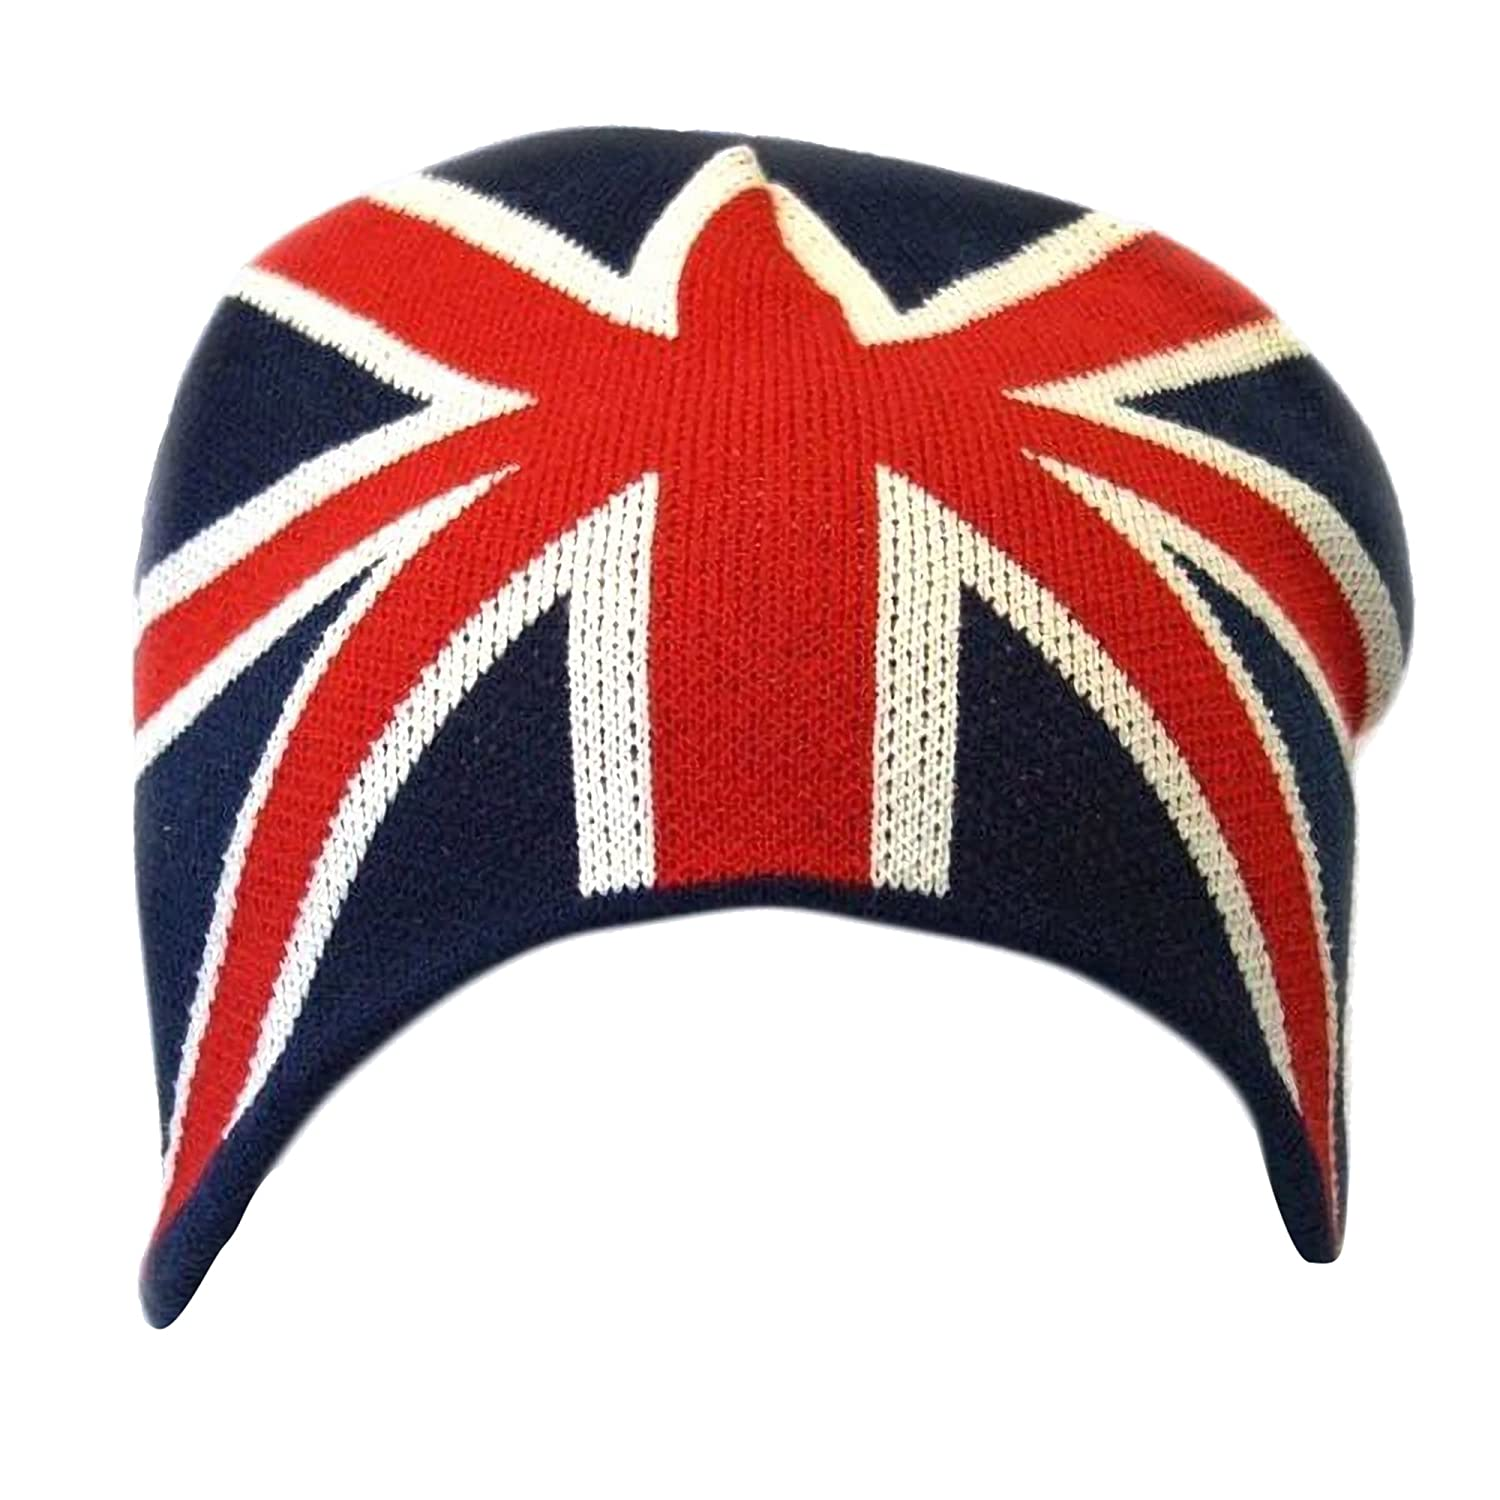 93f014a95557c Amazon.com  Universal Textiles Mens Great Britain Union Jack Flag Winter  Beanie Hat (One Size) (Navy White Red)  Clothing